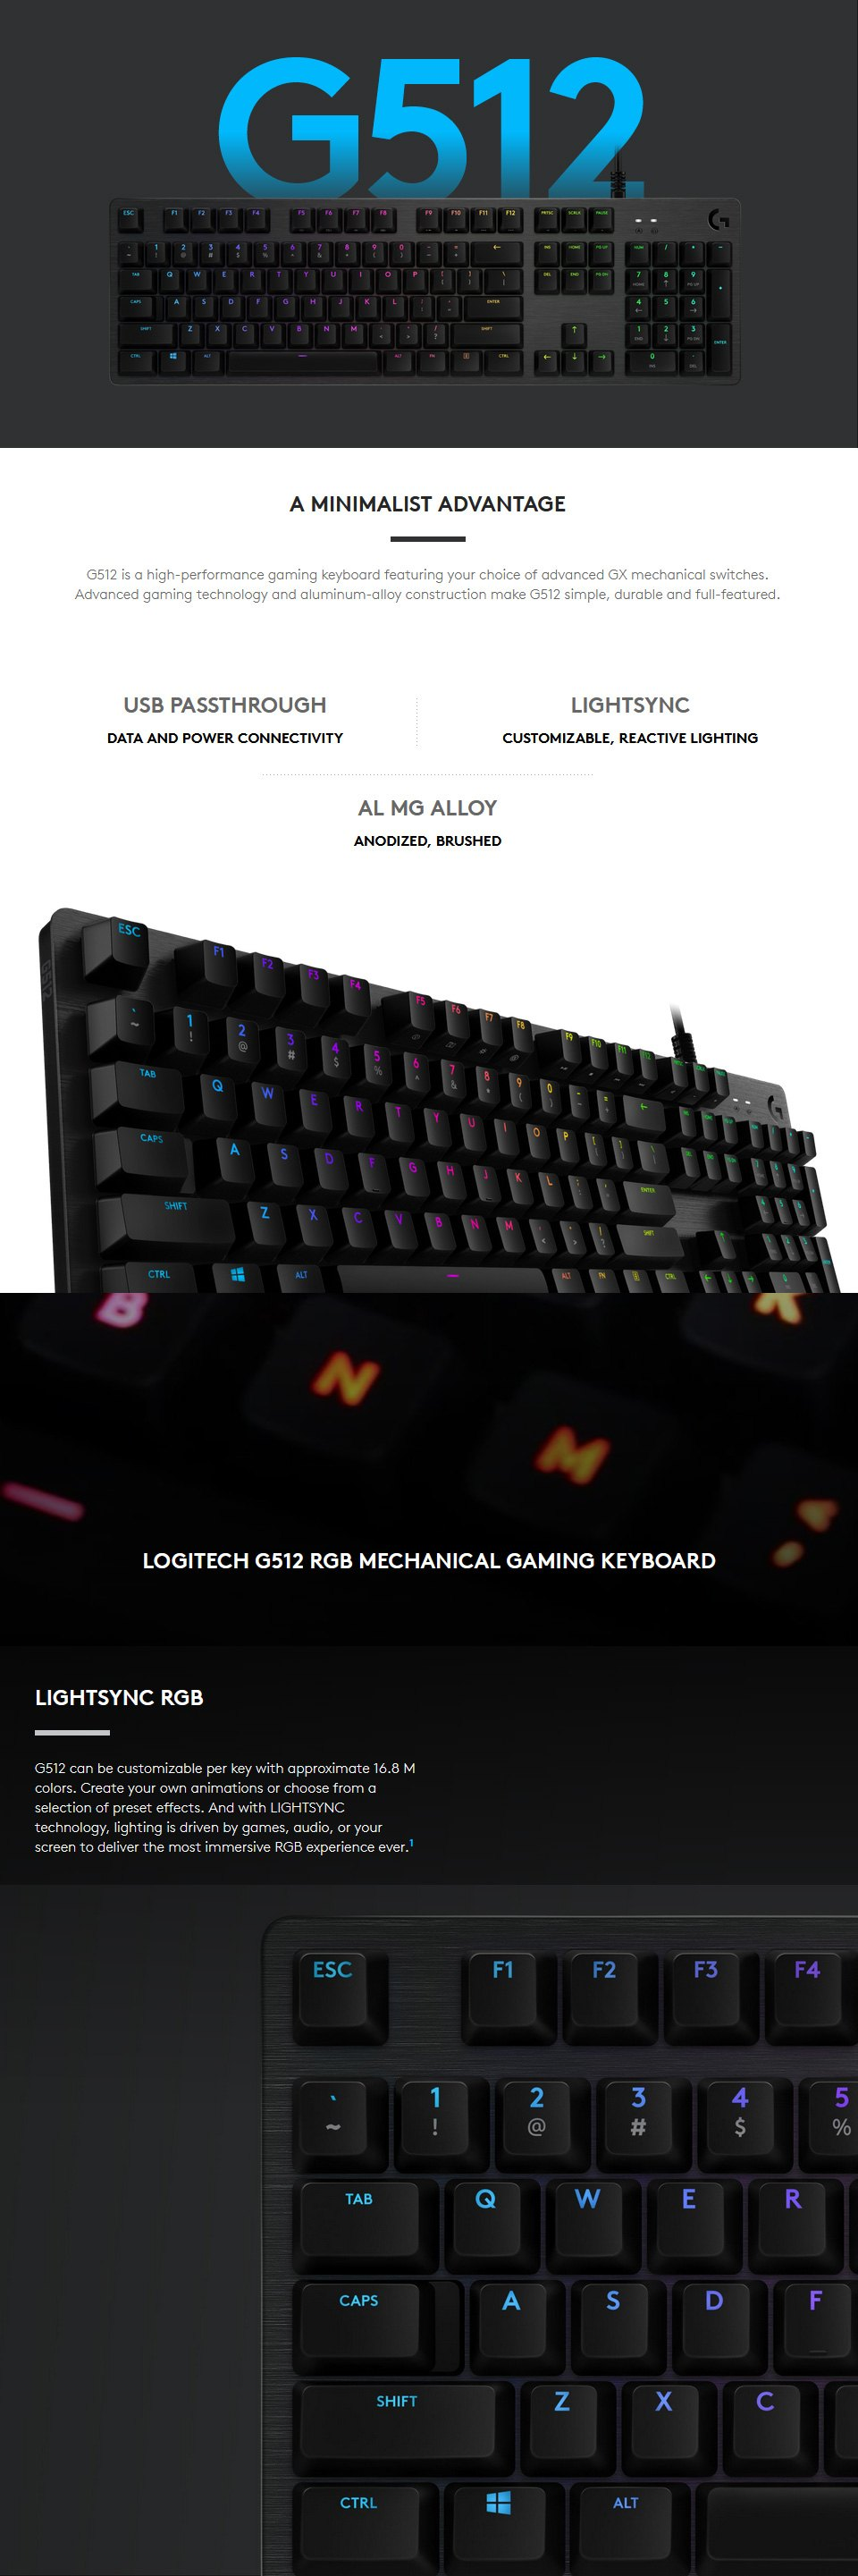 Logitech G512 Carbon RGB Mechanical Keyboard GX Brown features